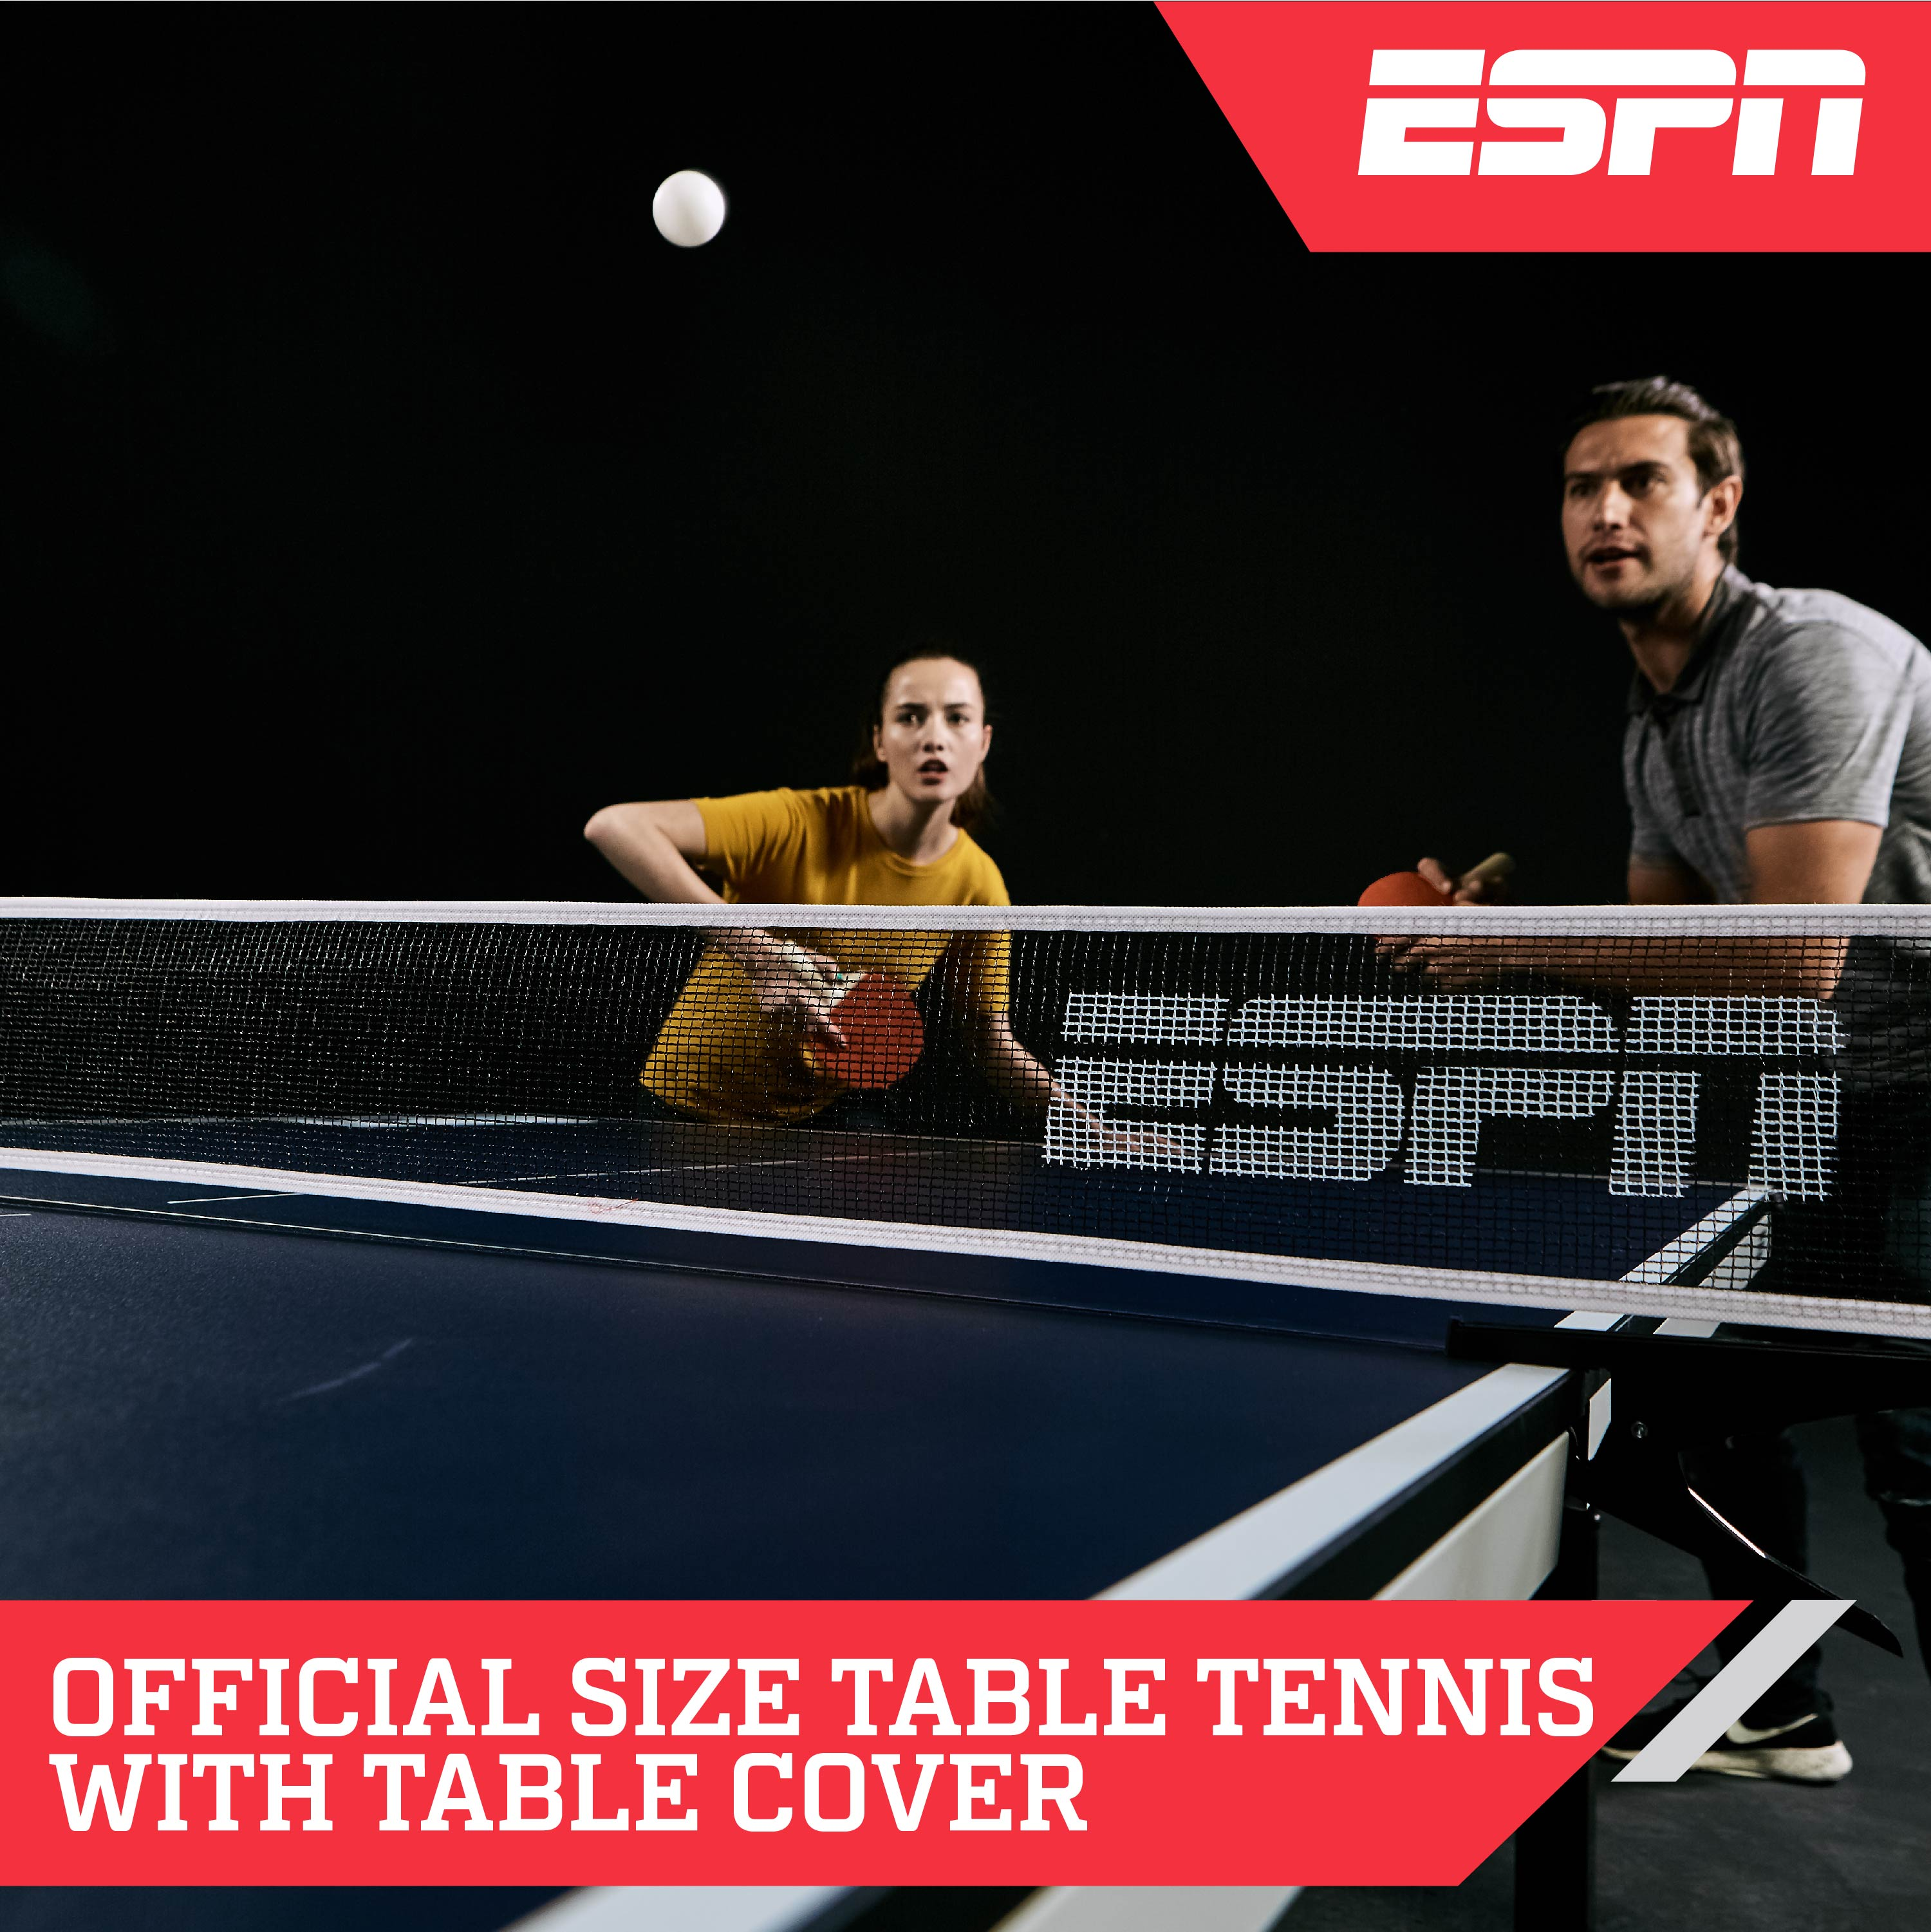 sc 1 st  Walmart & ESPN Official Size Table Tennis Table with Table Cover - Walmart.com